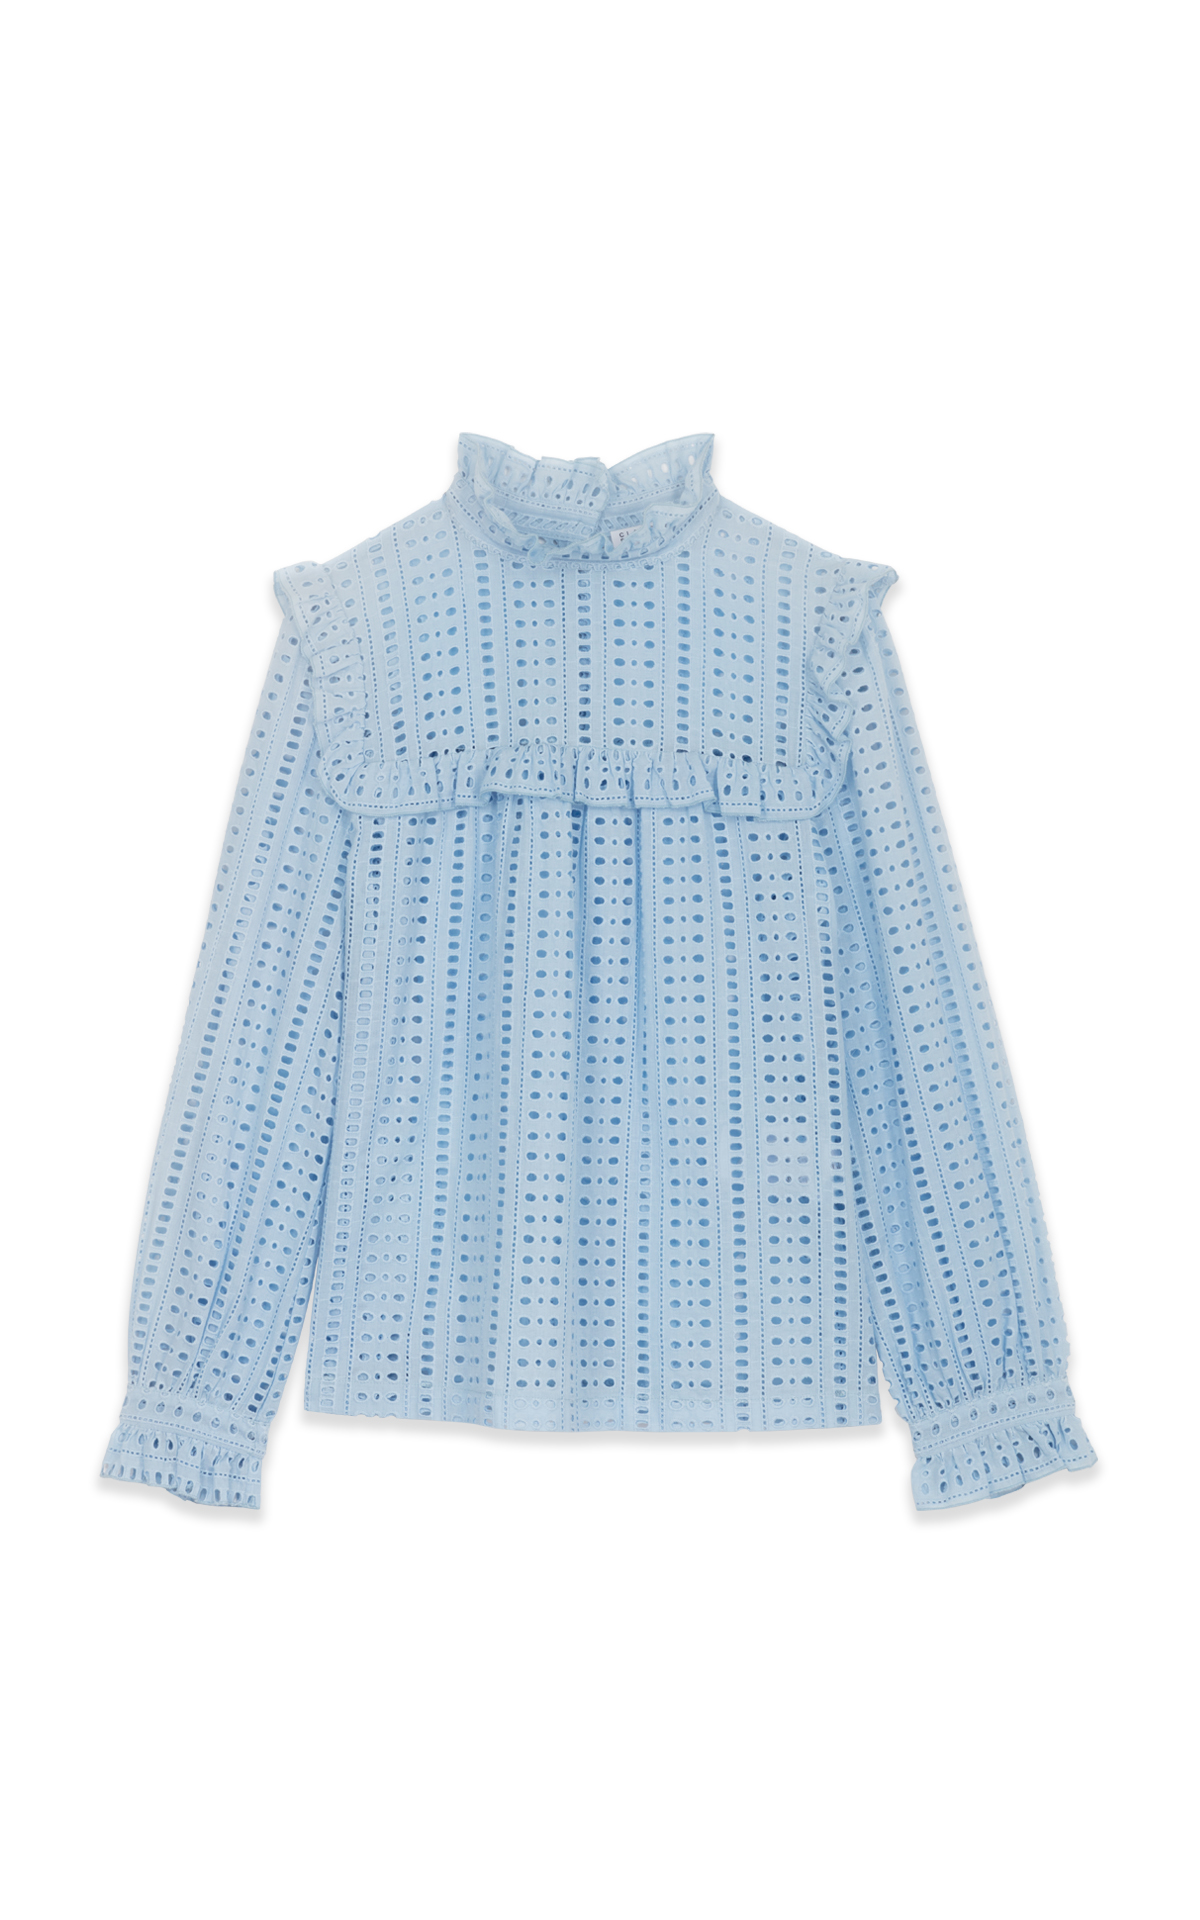 La Vallée Village Claudie Pierlot blue blouse